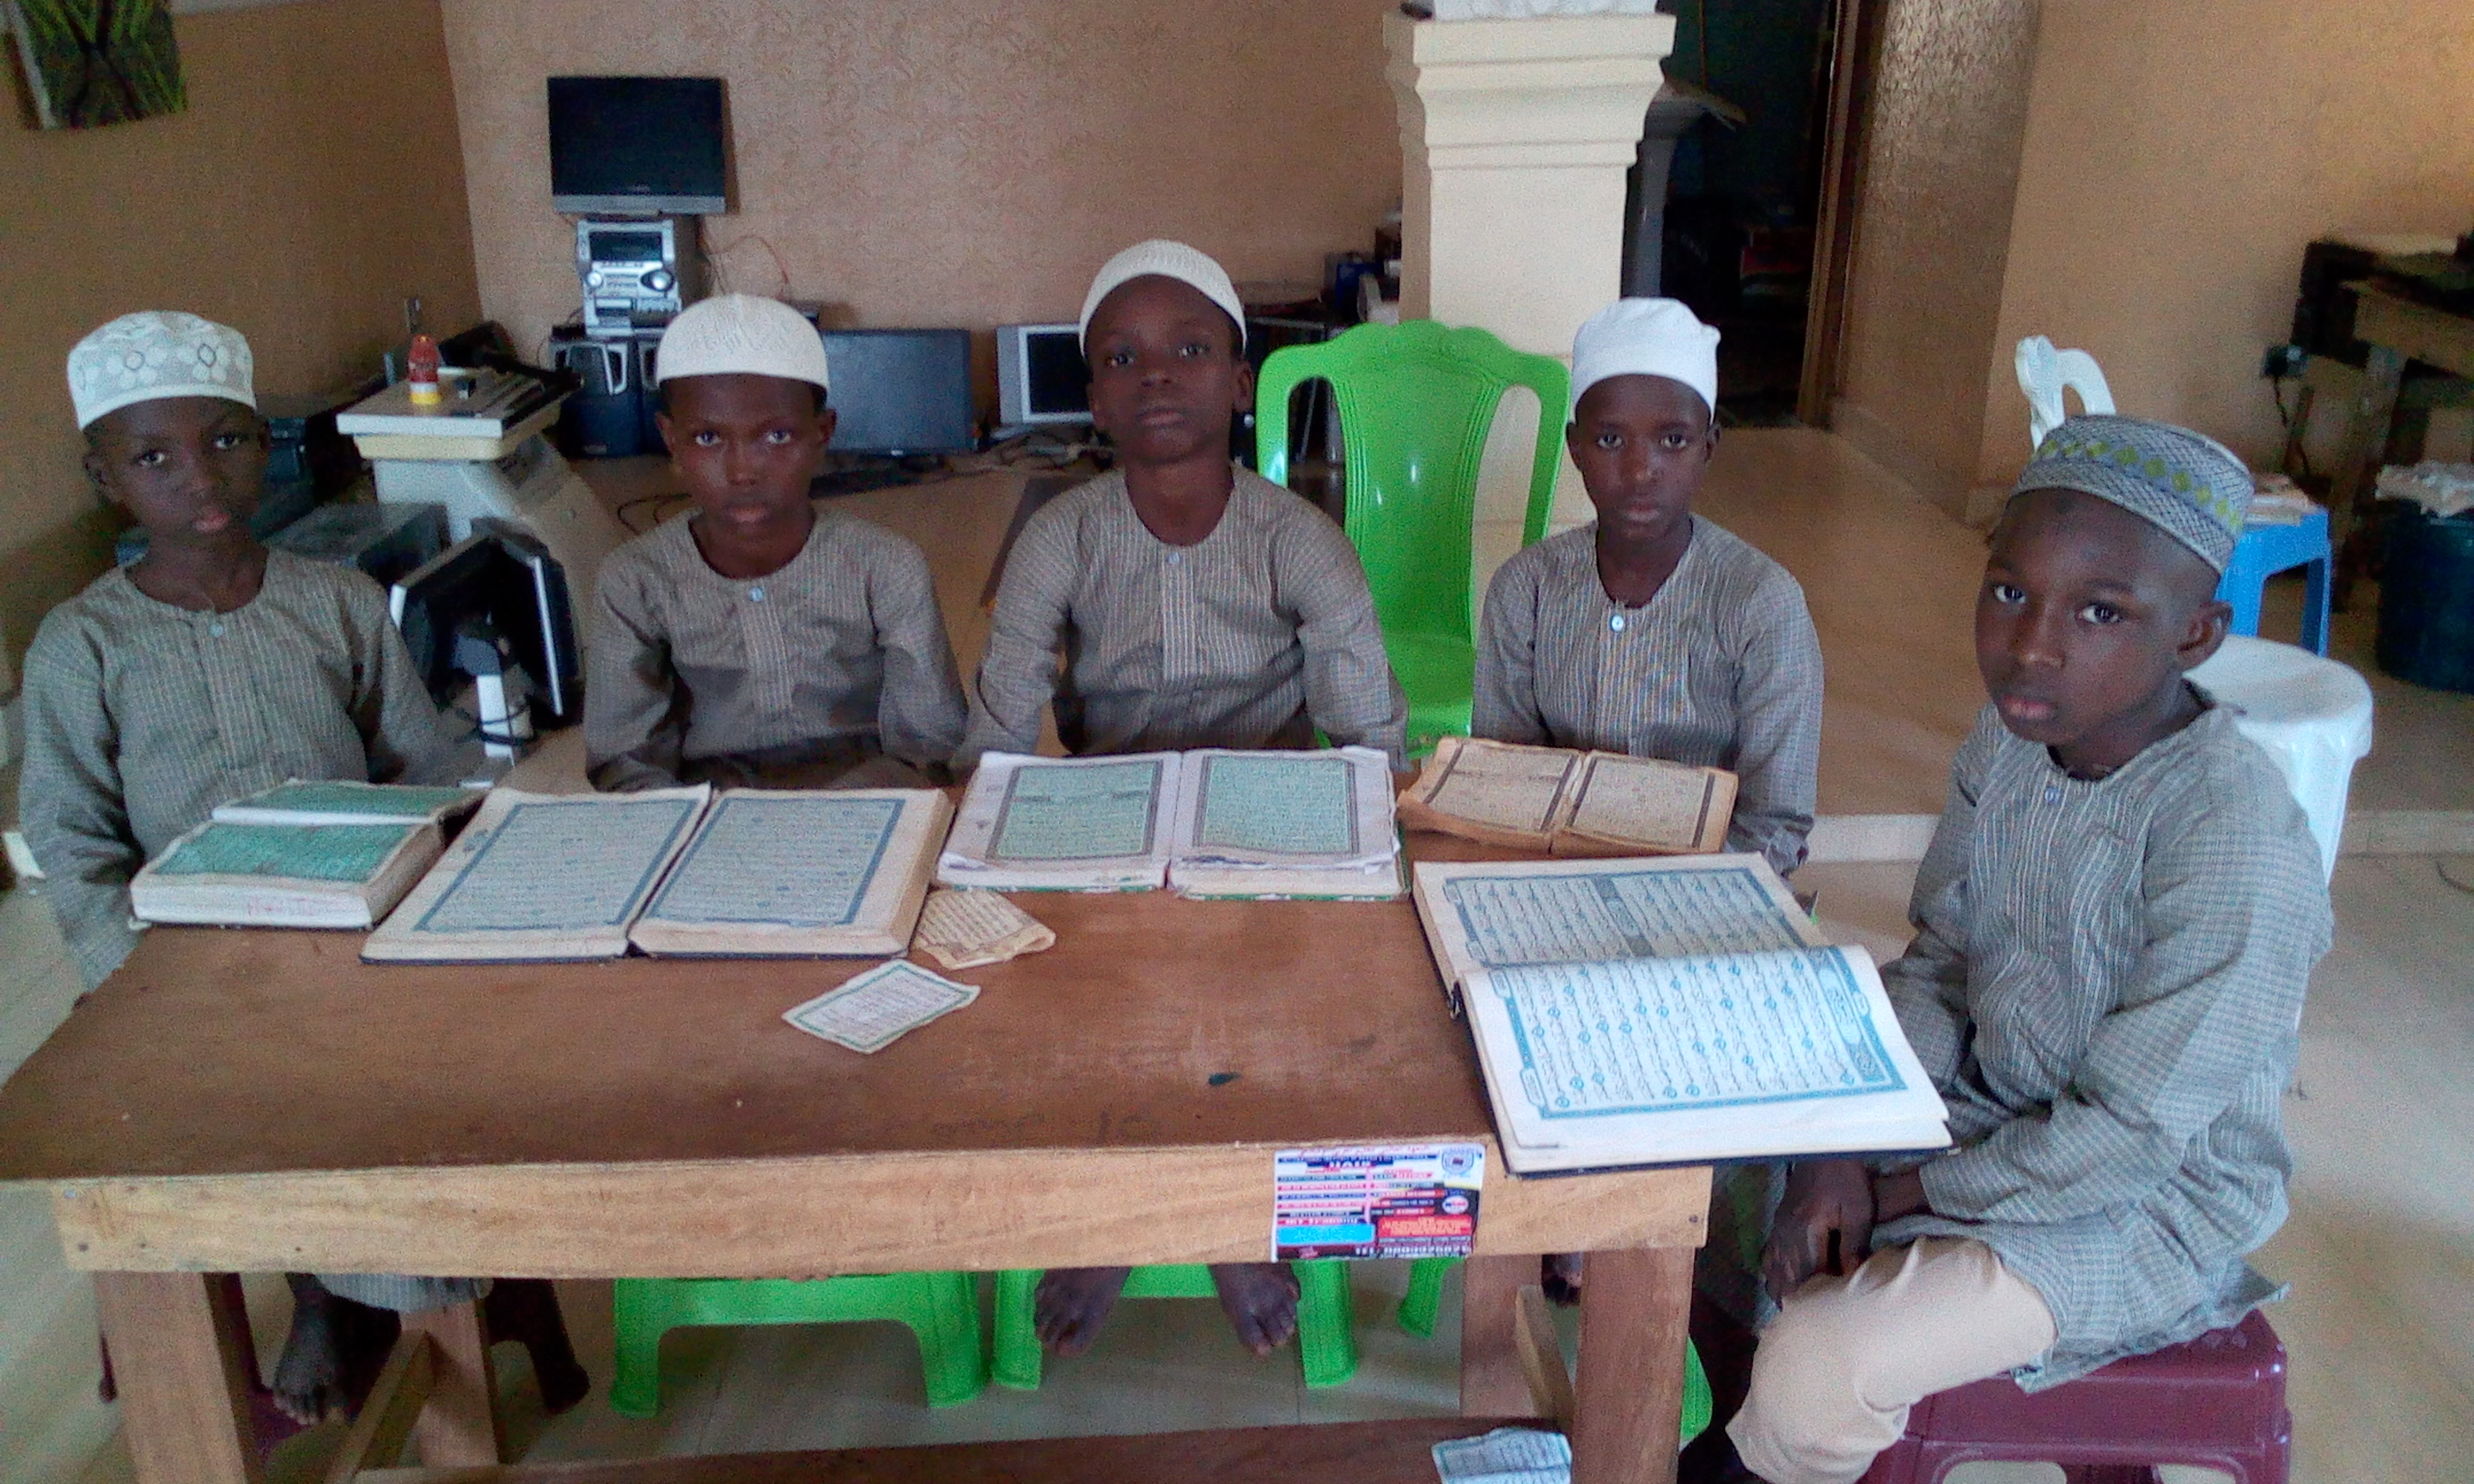 IIAIS STUDENTS DURING THE QUR'AN MEMORIZATION DRILL